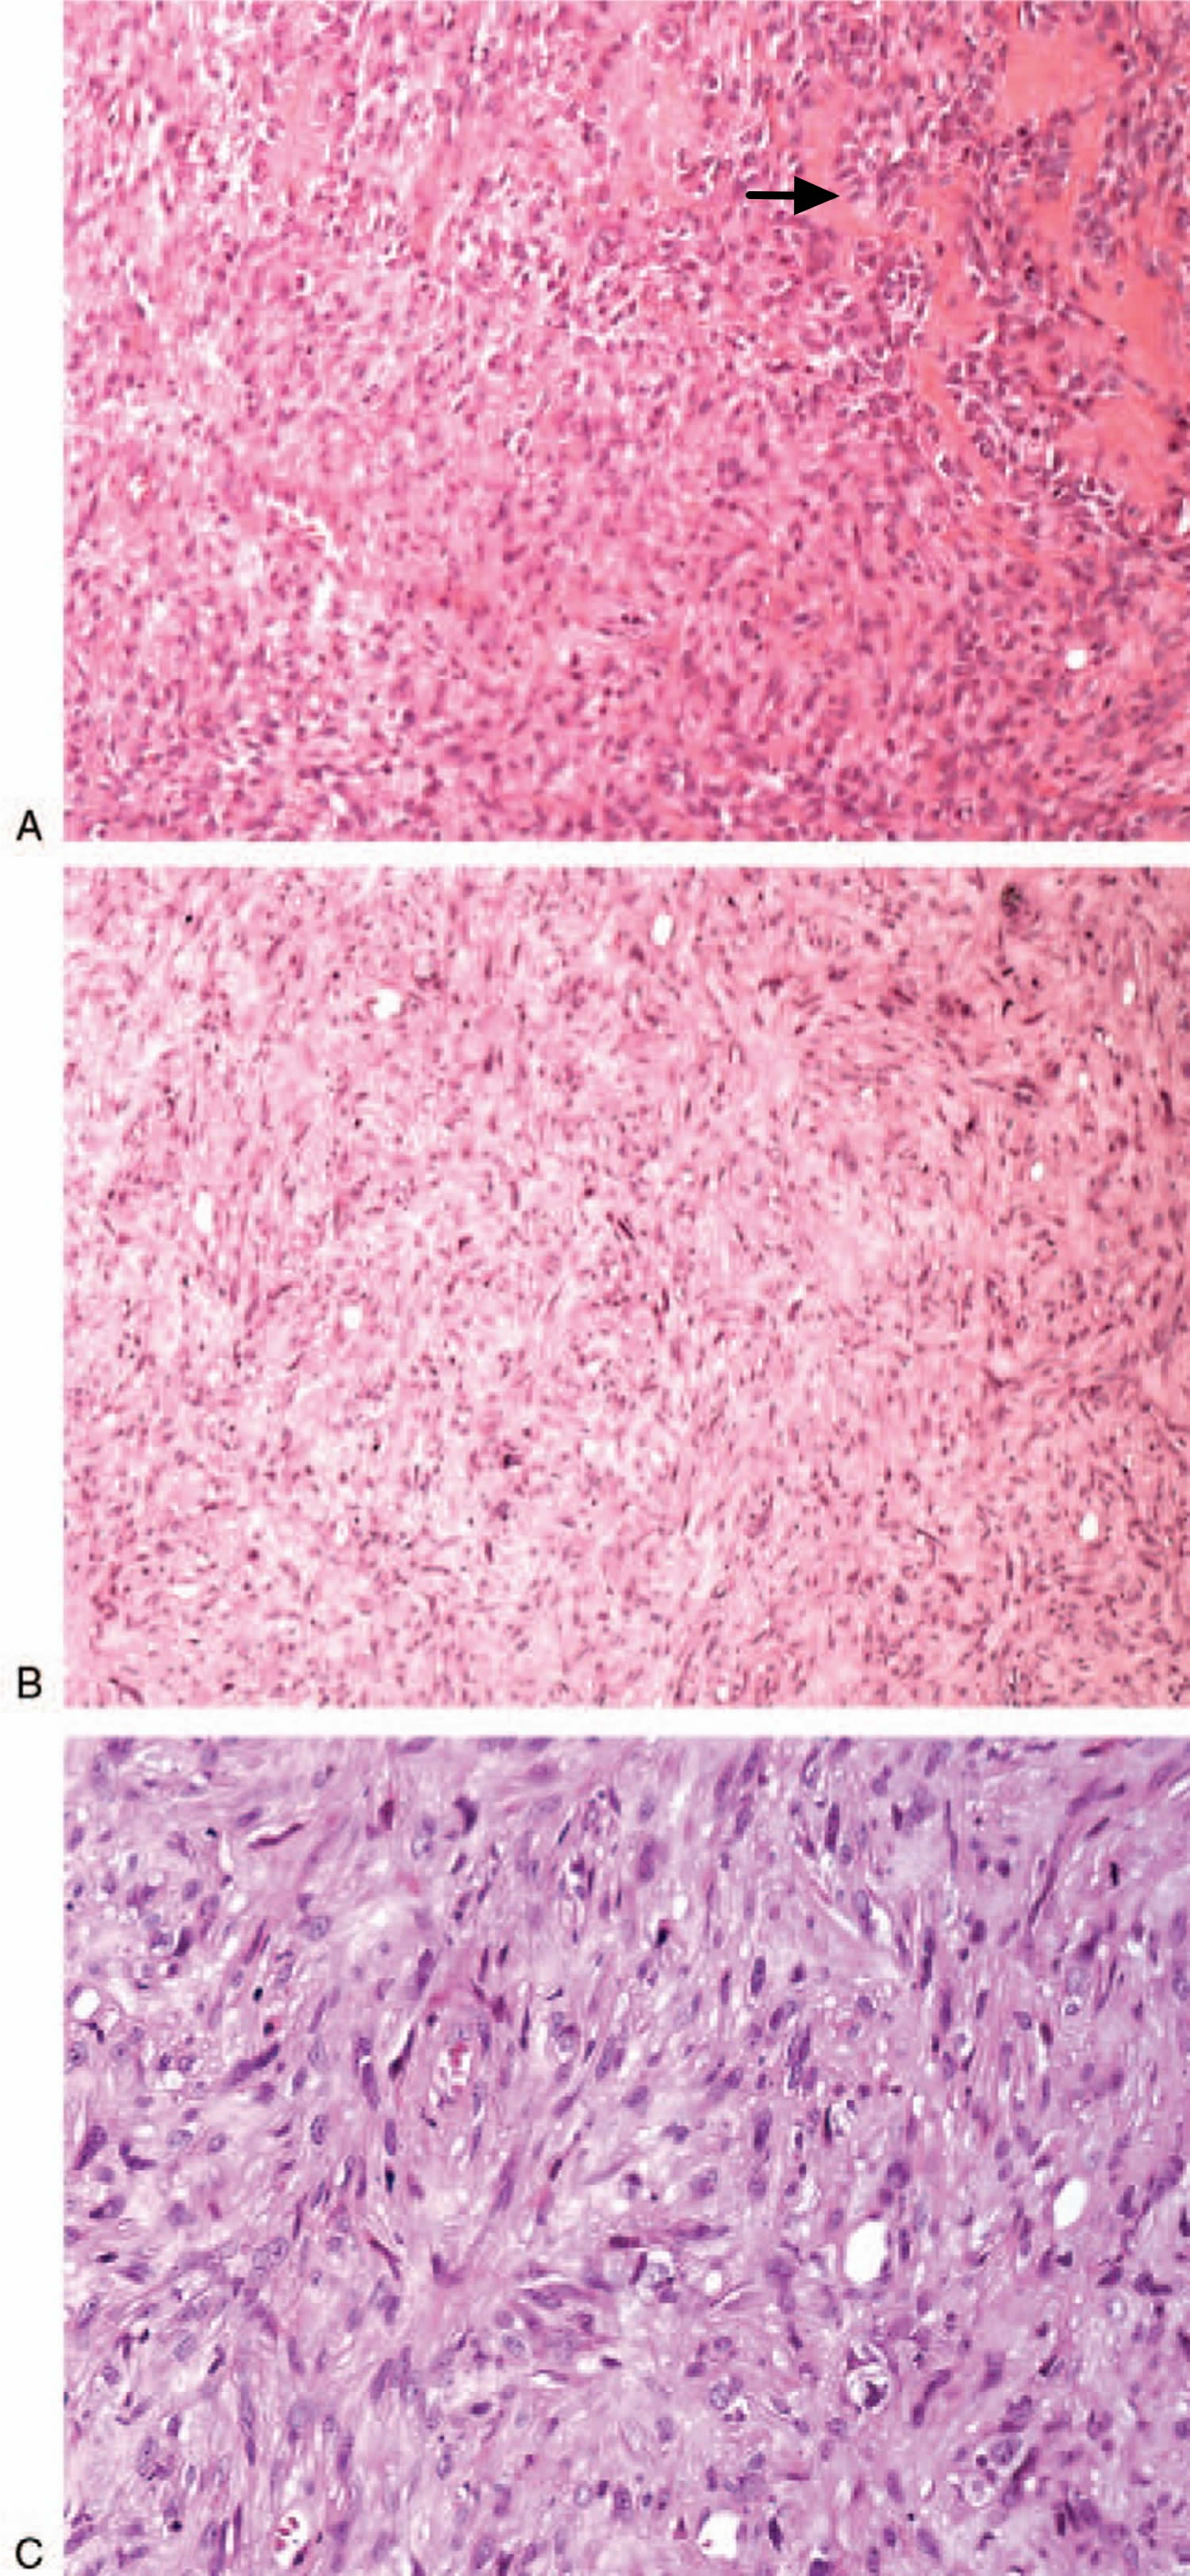 Epithelioid angiosarcoma malignant cells